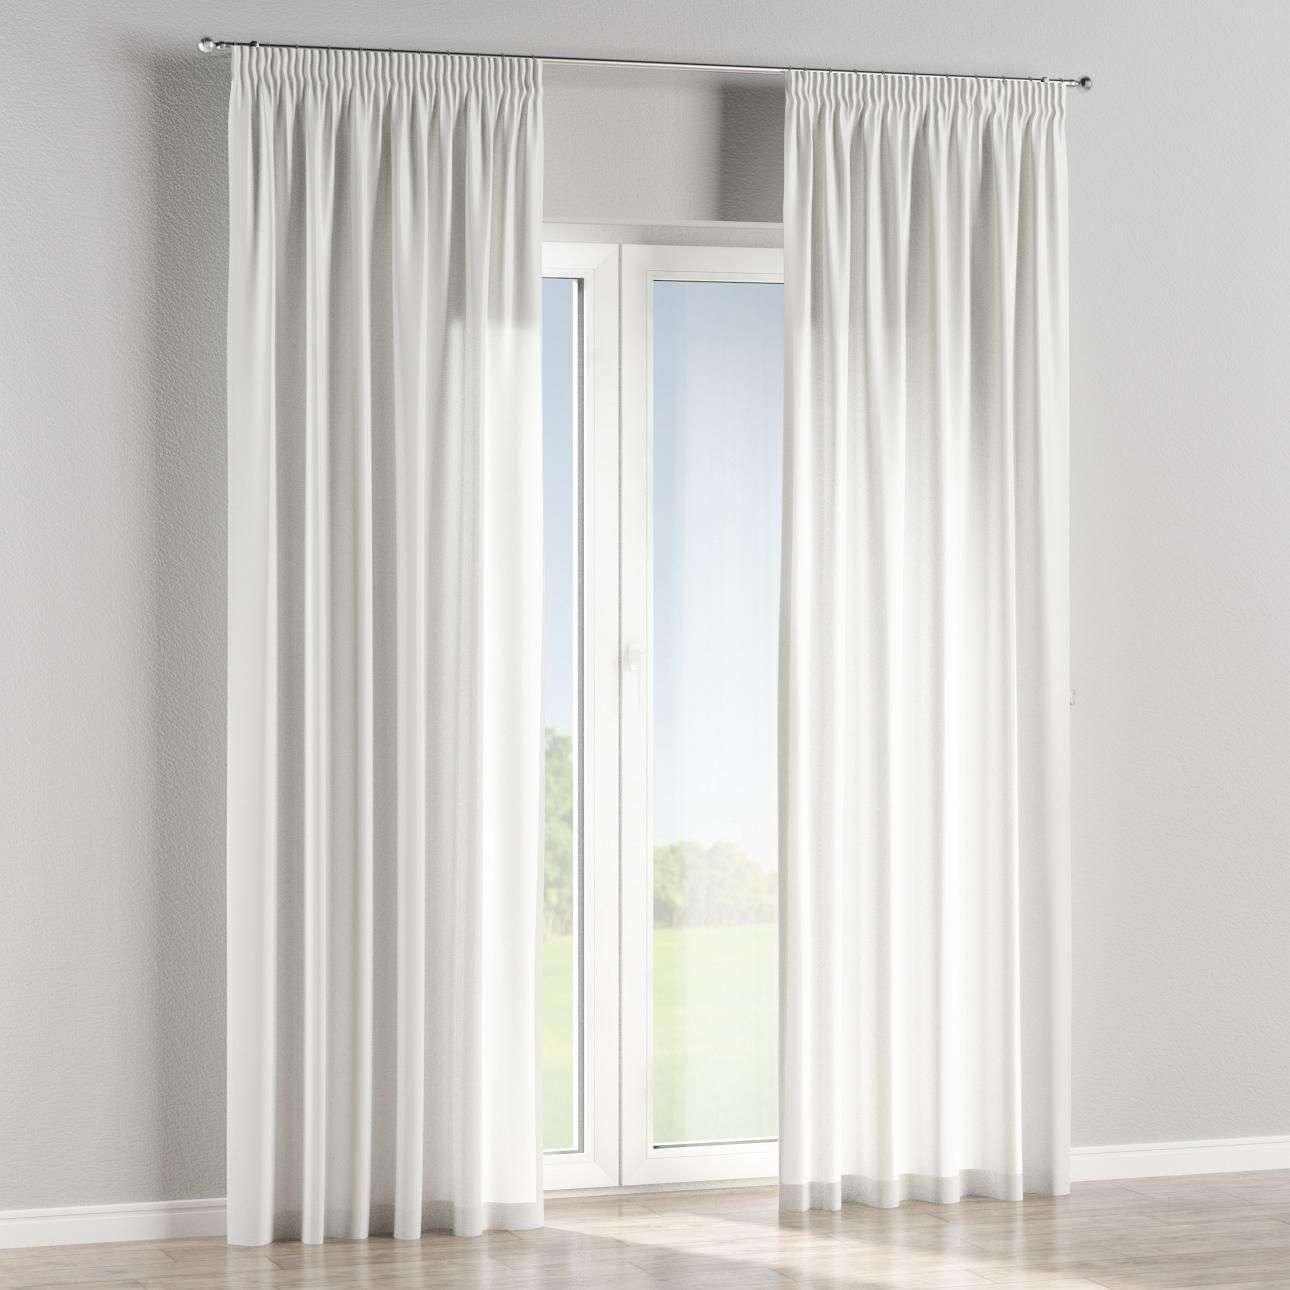 Pencil pleat curtains in collection Mirella, fabric: 142-06